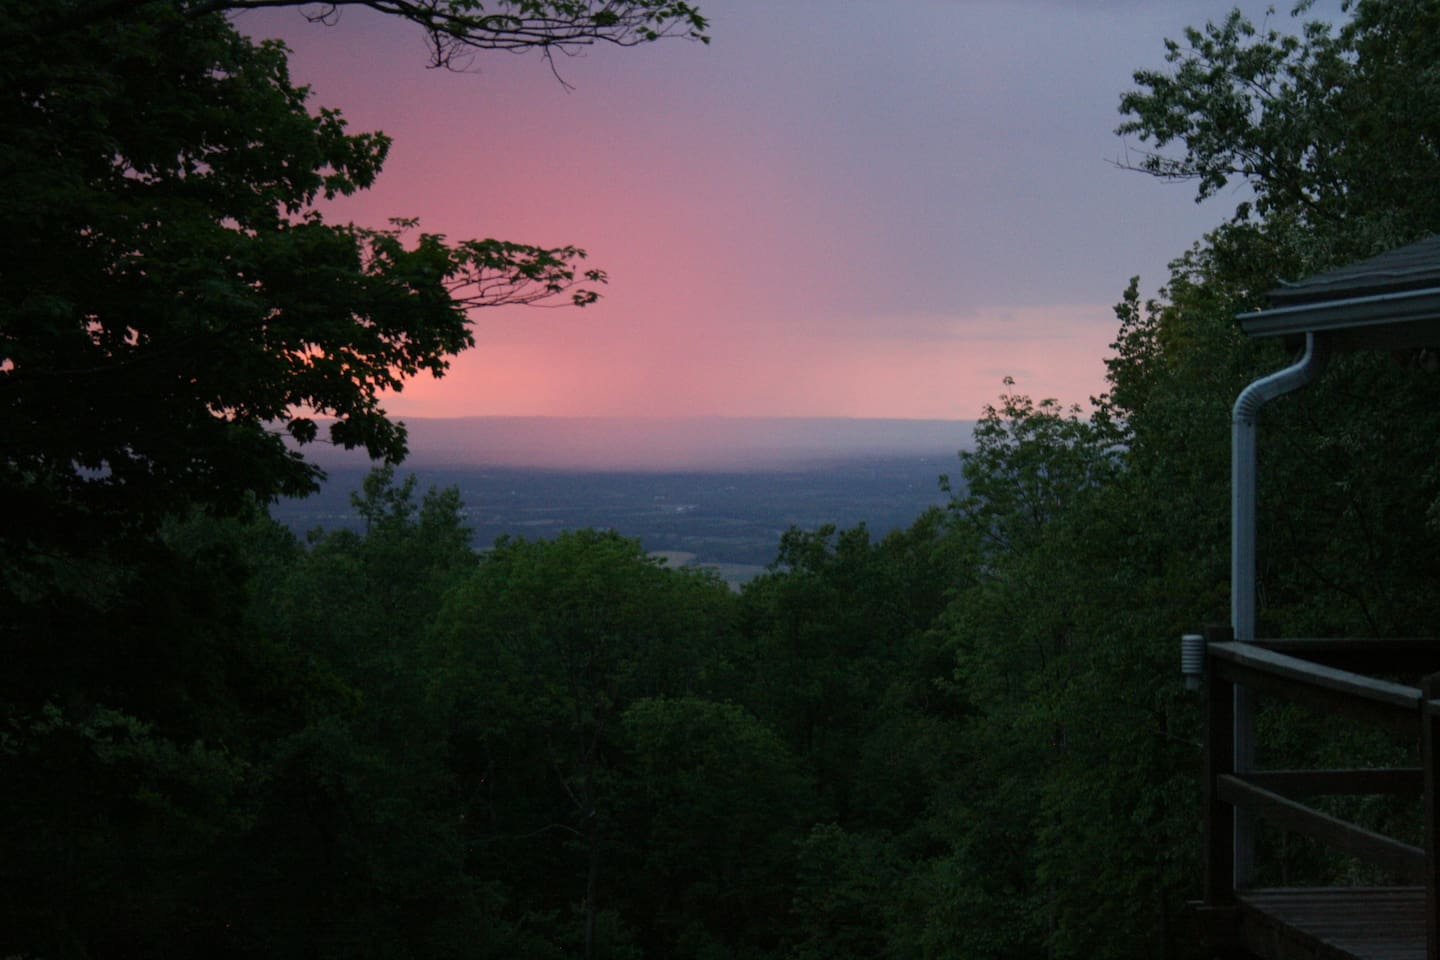 Pink Sunset, view from the deck